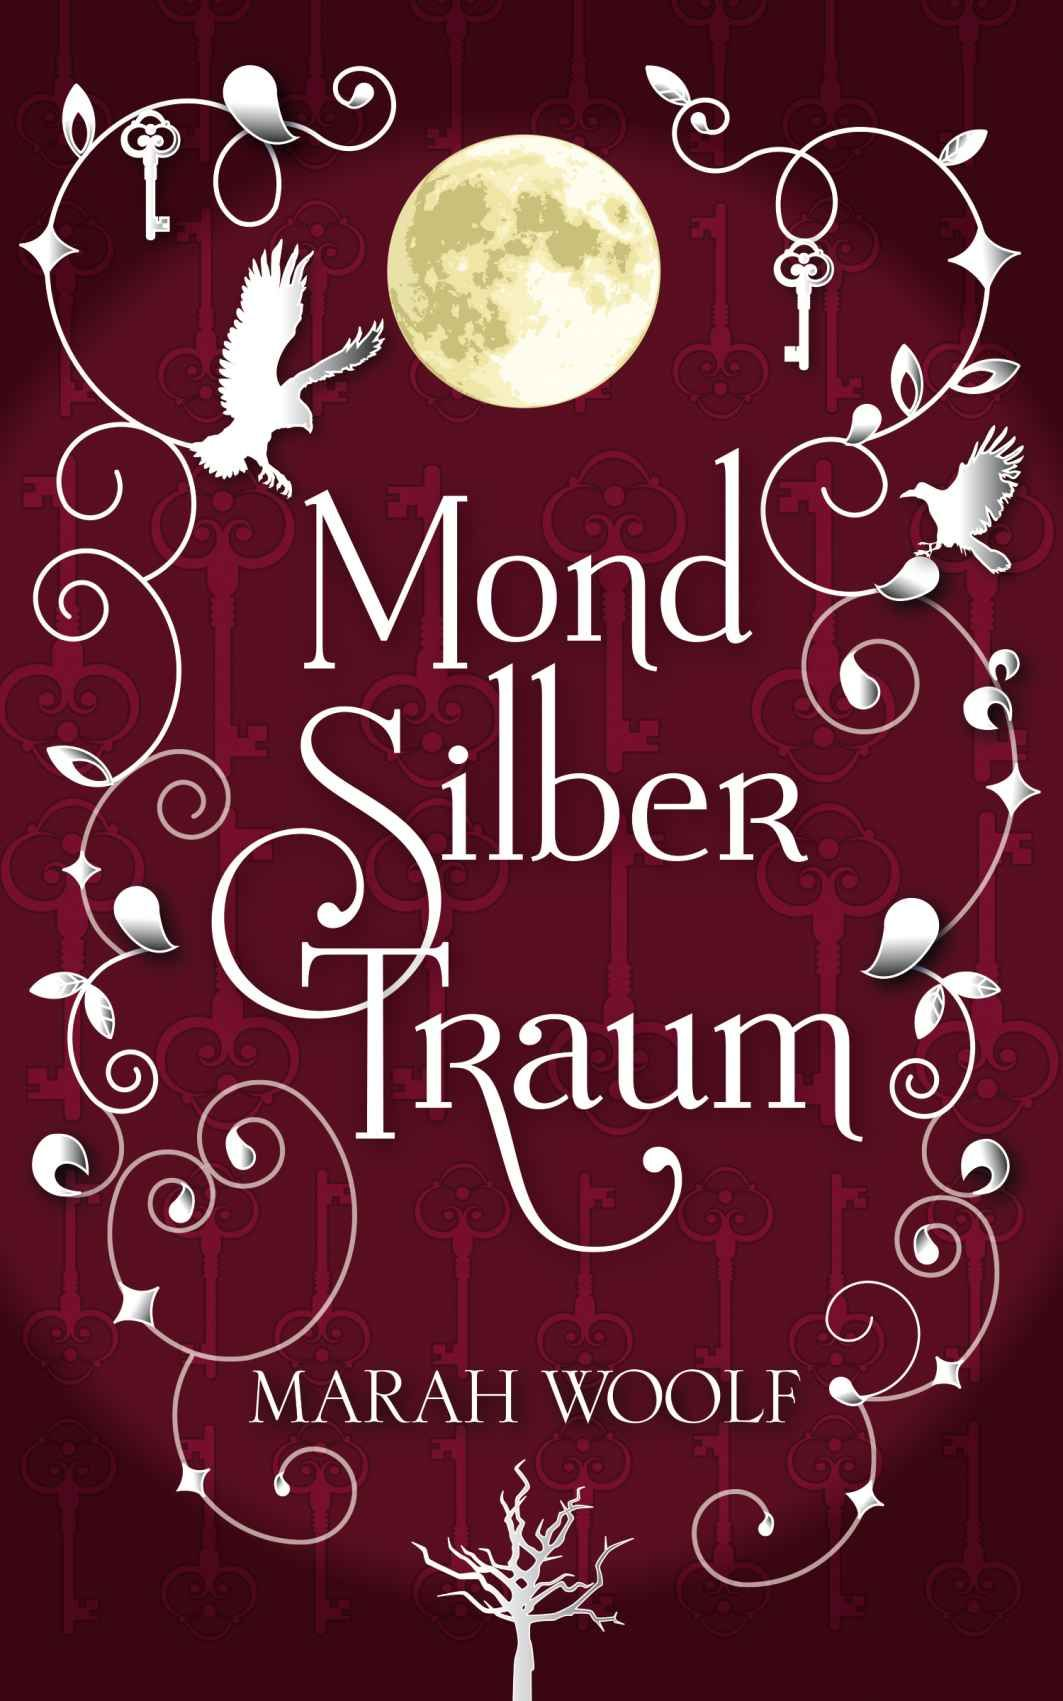 MondSilberTraum (MondLichtSaga Band 3) eBook: Marah Woolf: Amazon.de: Kindle-Shop